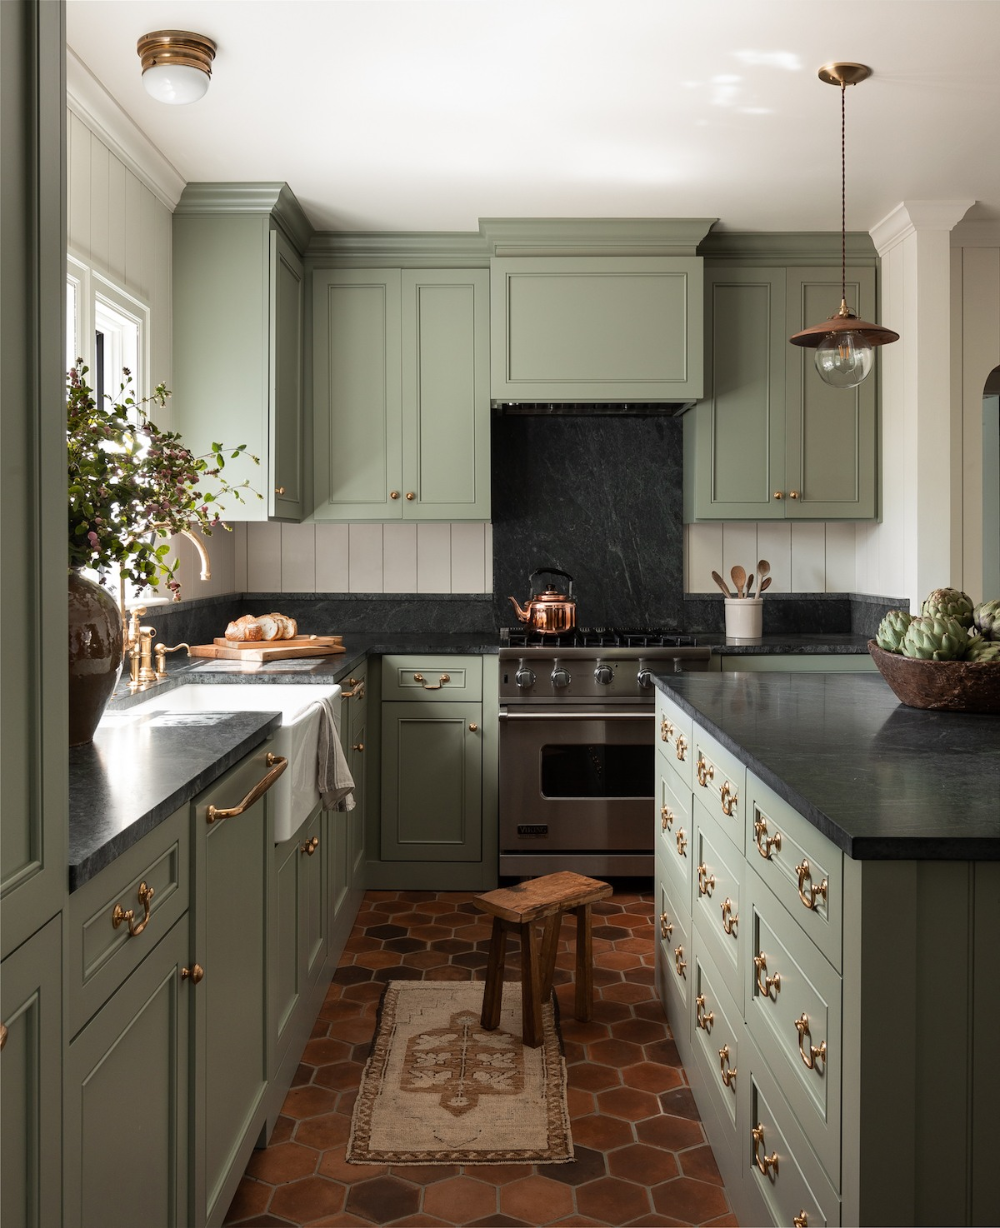 7 Trends That Are Going To Be Huge In 2020 In 2020 Green Kitchen Cabinets Kitchen Inspirations Sage Green Kitchen